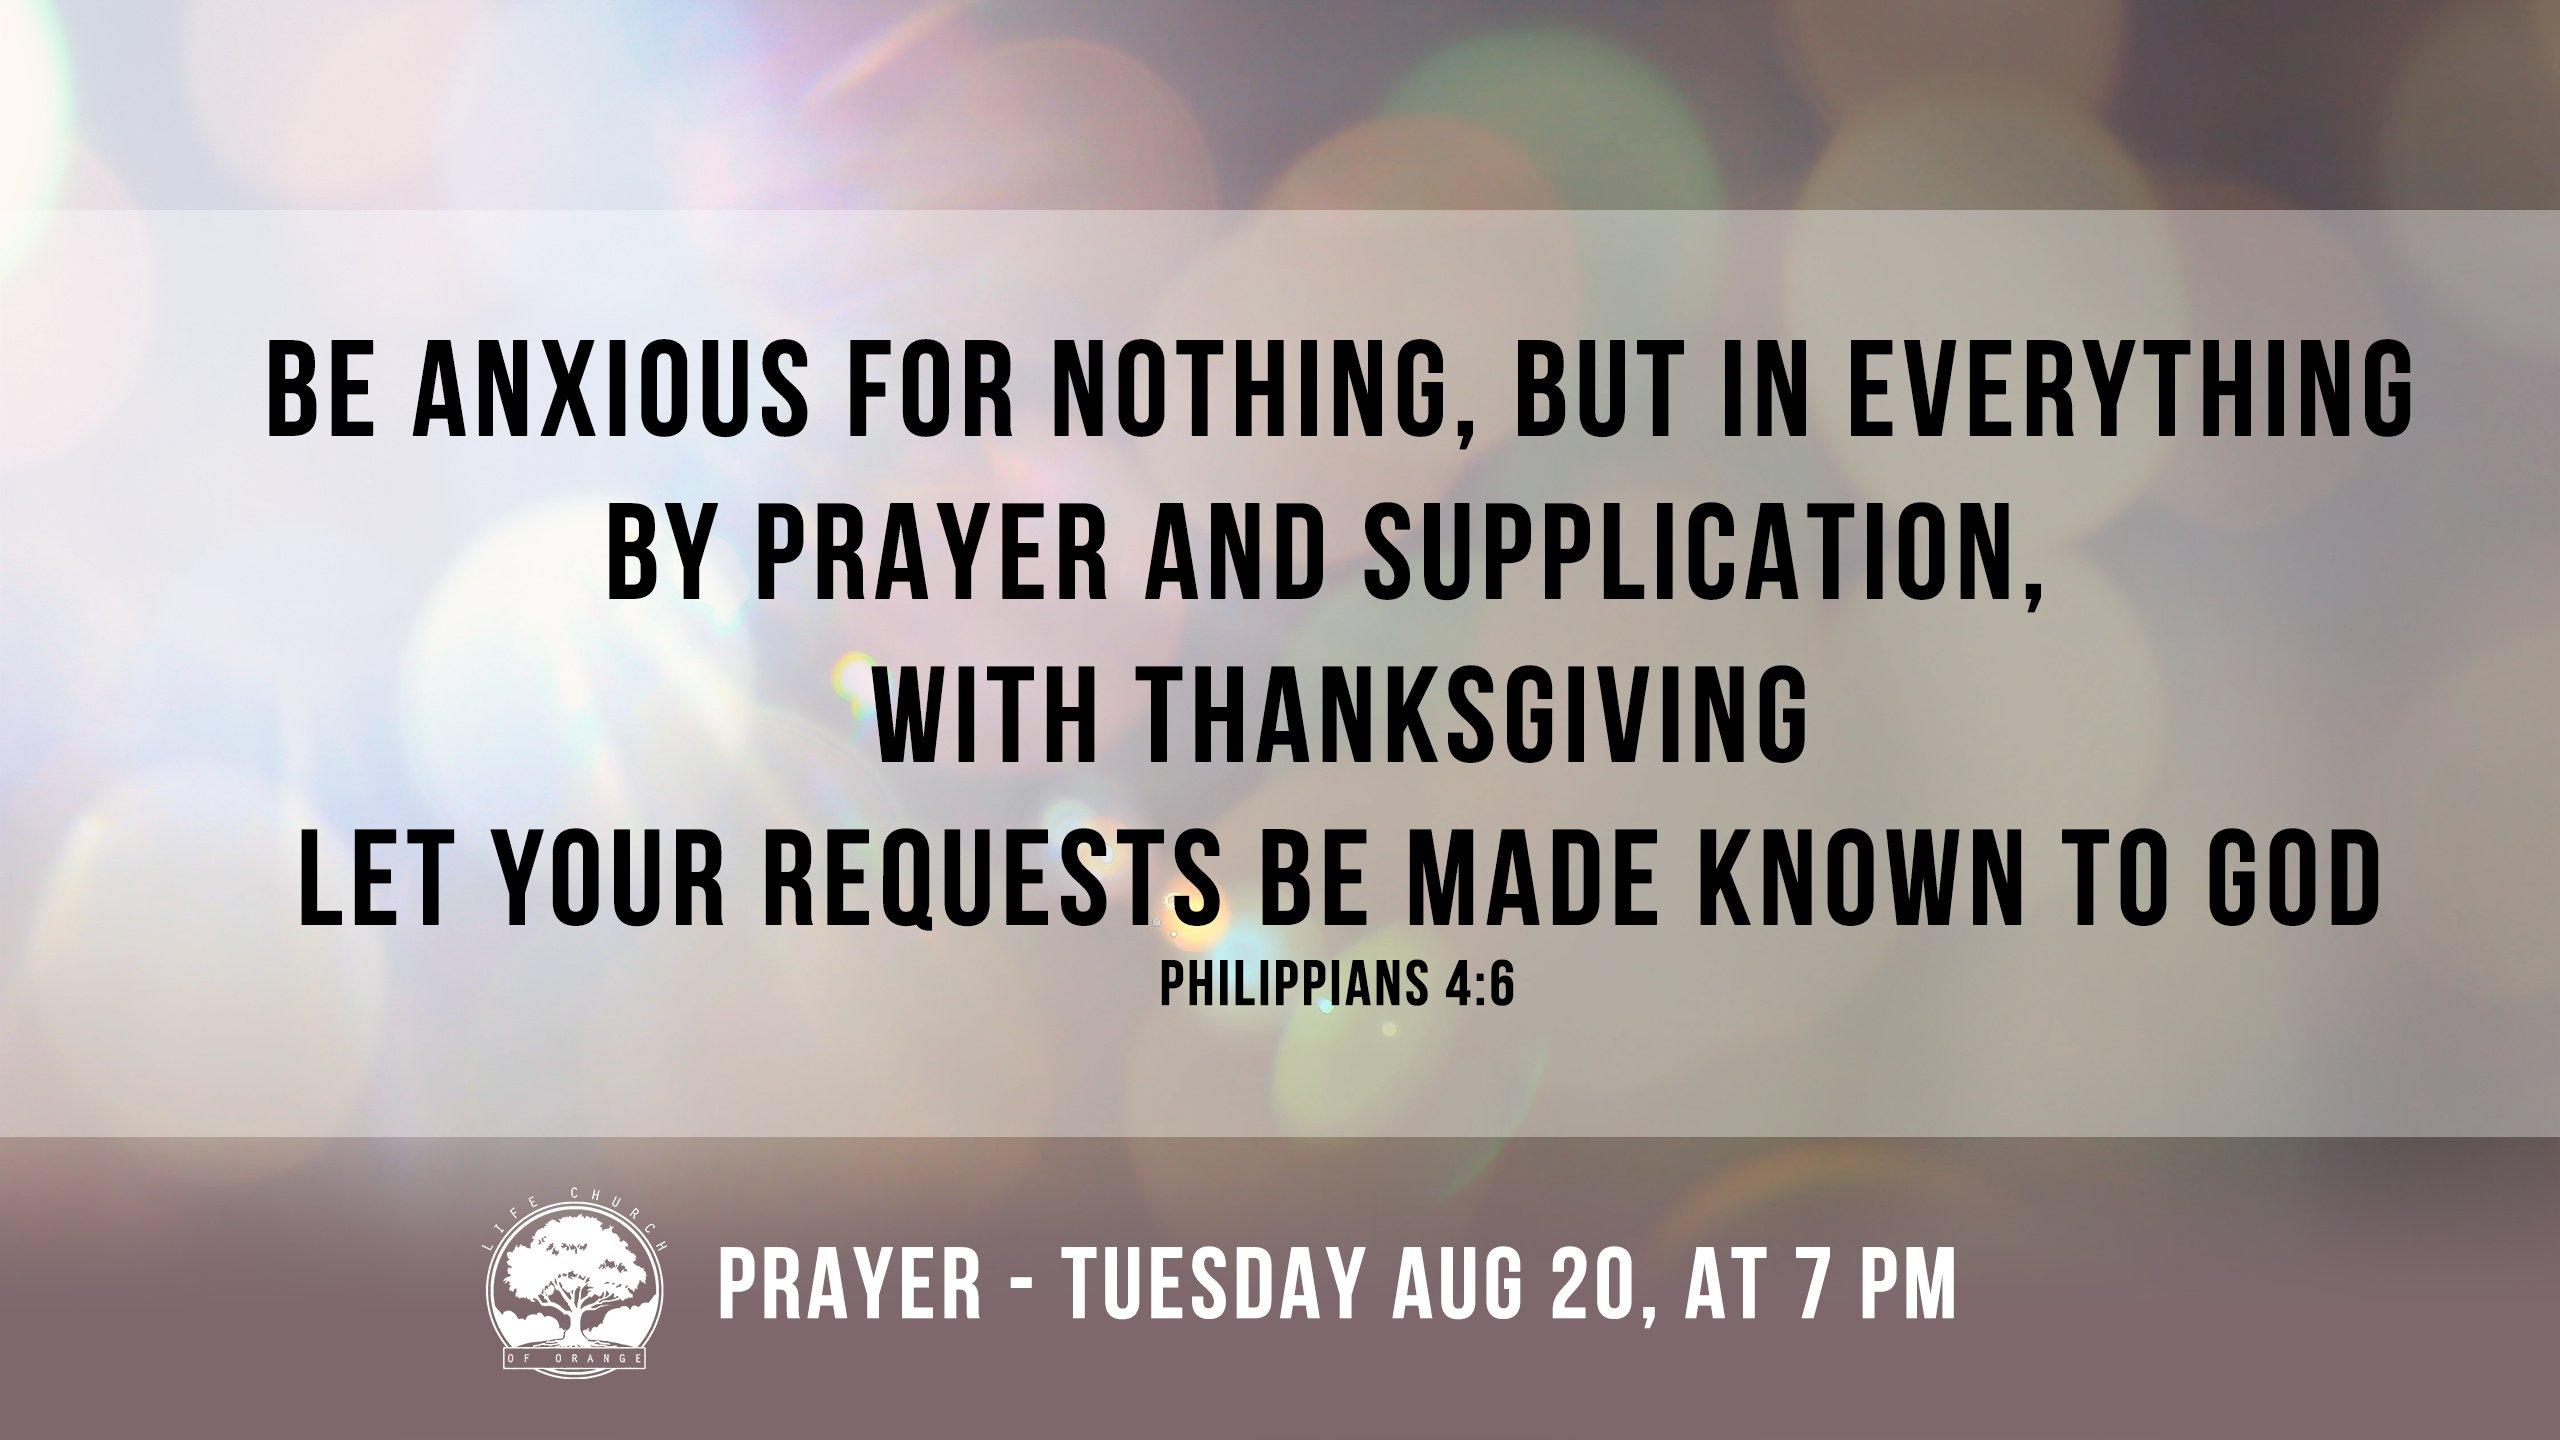 Join us tonight for prayer as we let our requests be made known to God.